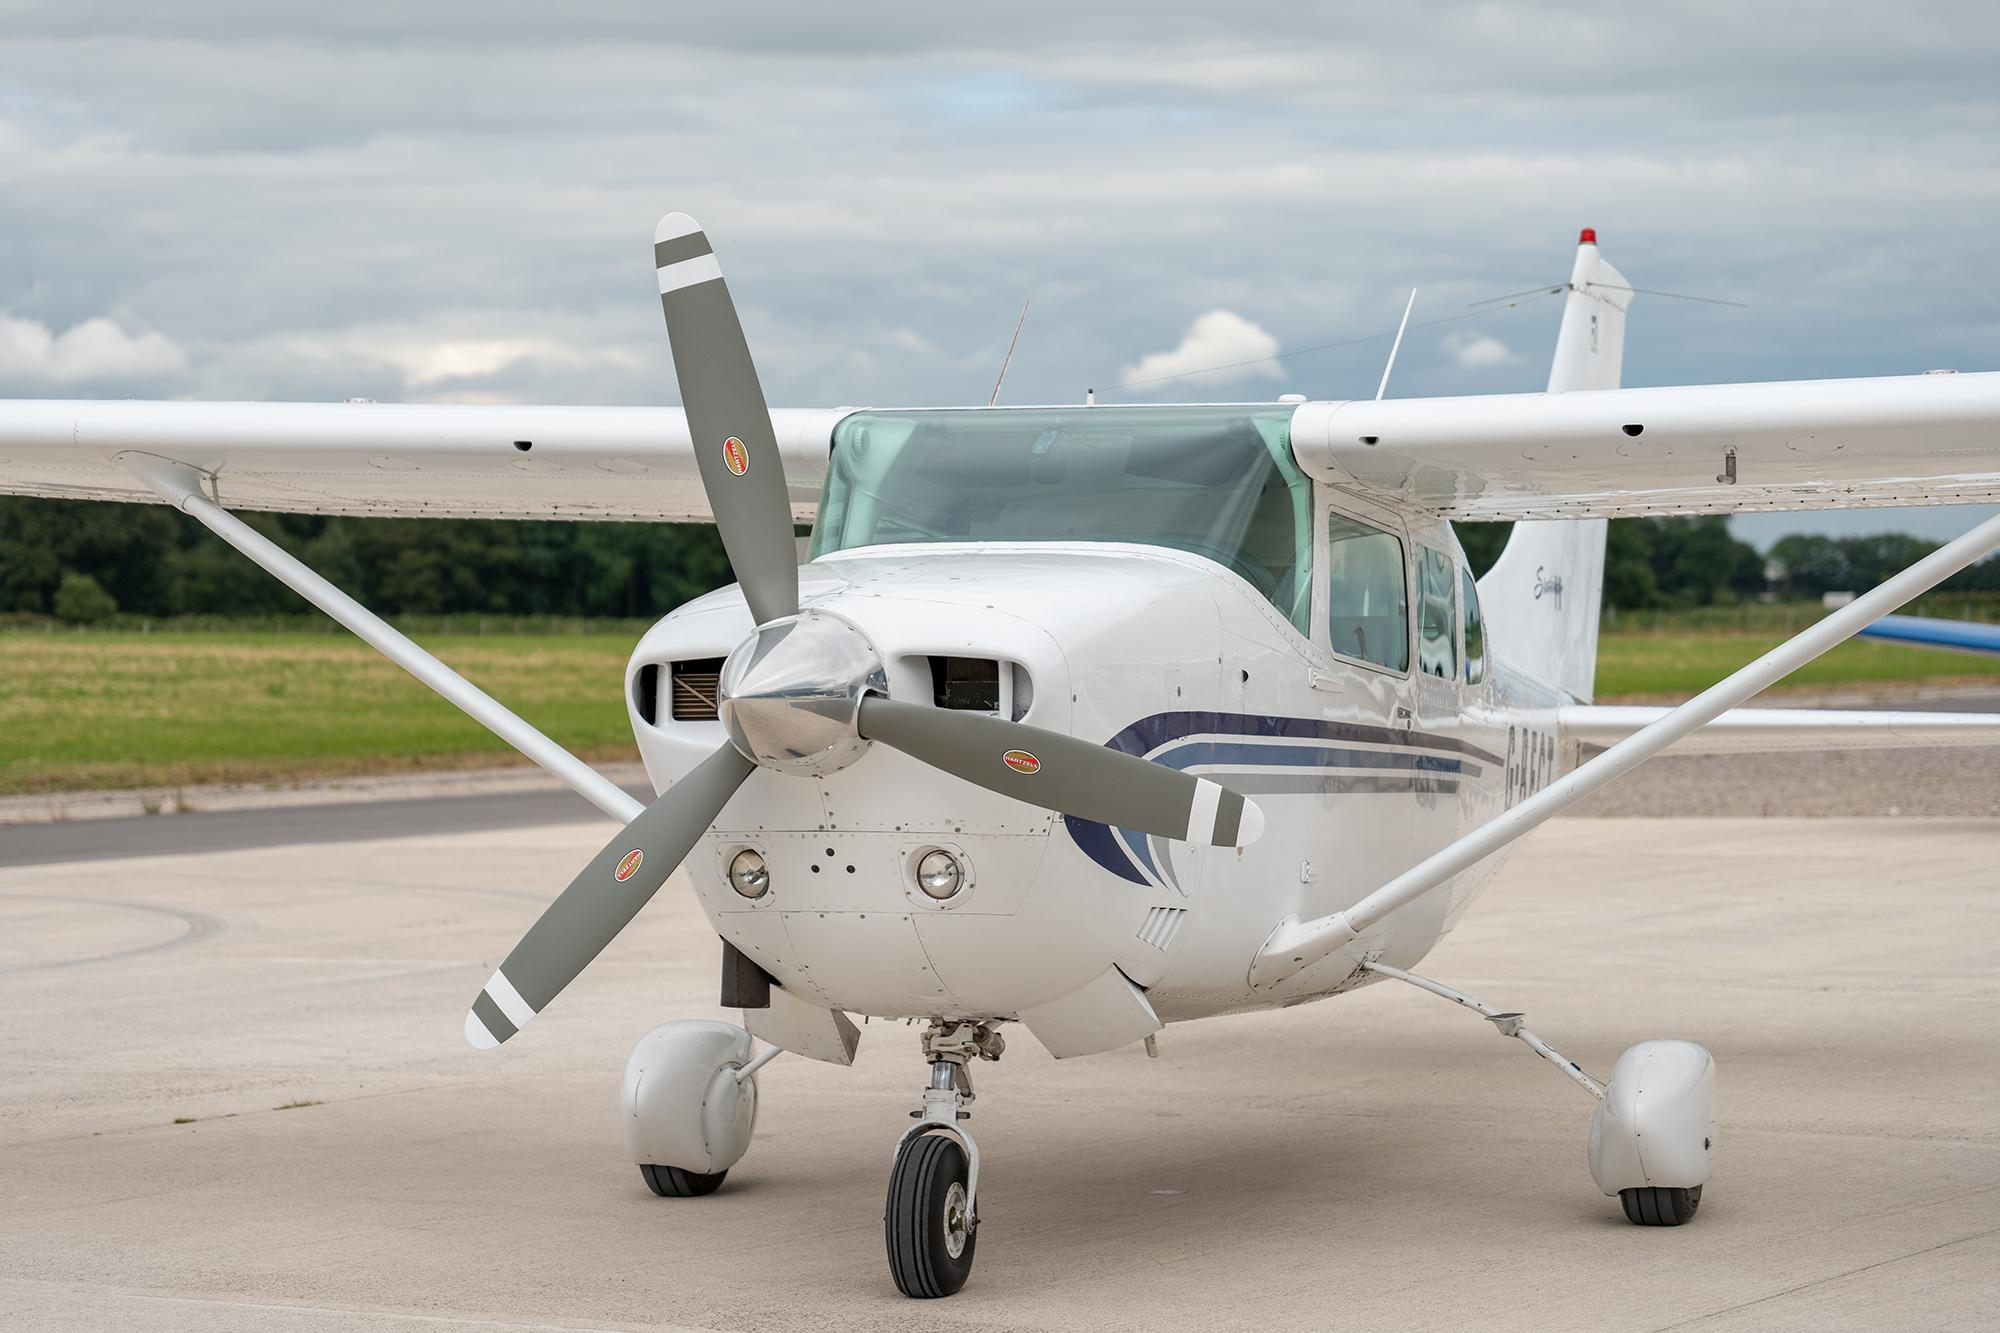 National Day Of Reconciliation ⁓ The Fastest Cessna 206